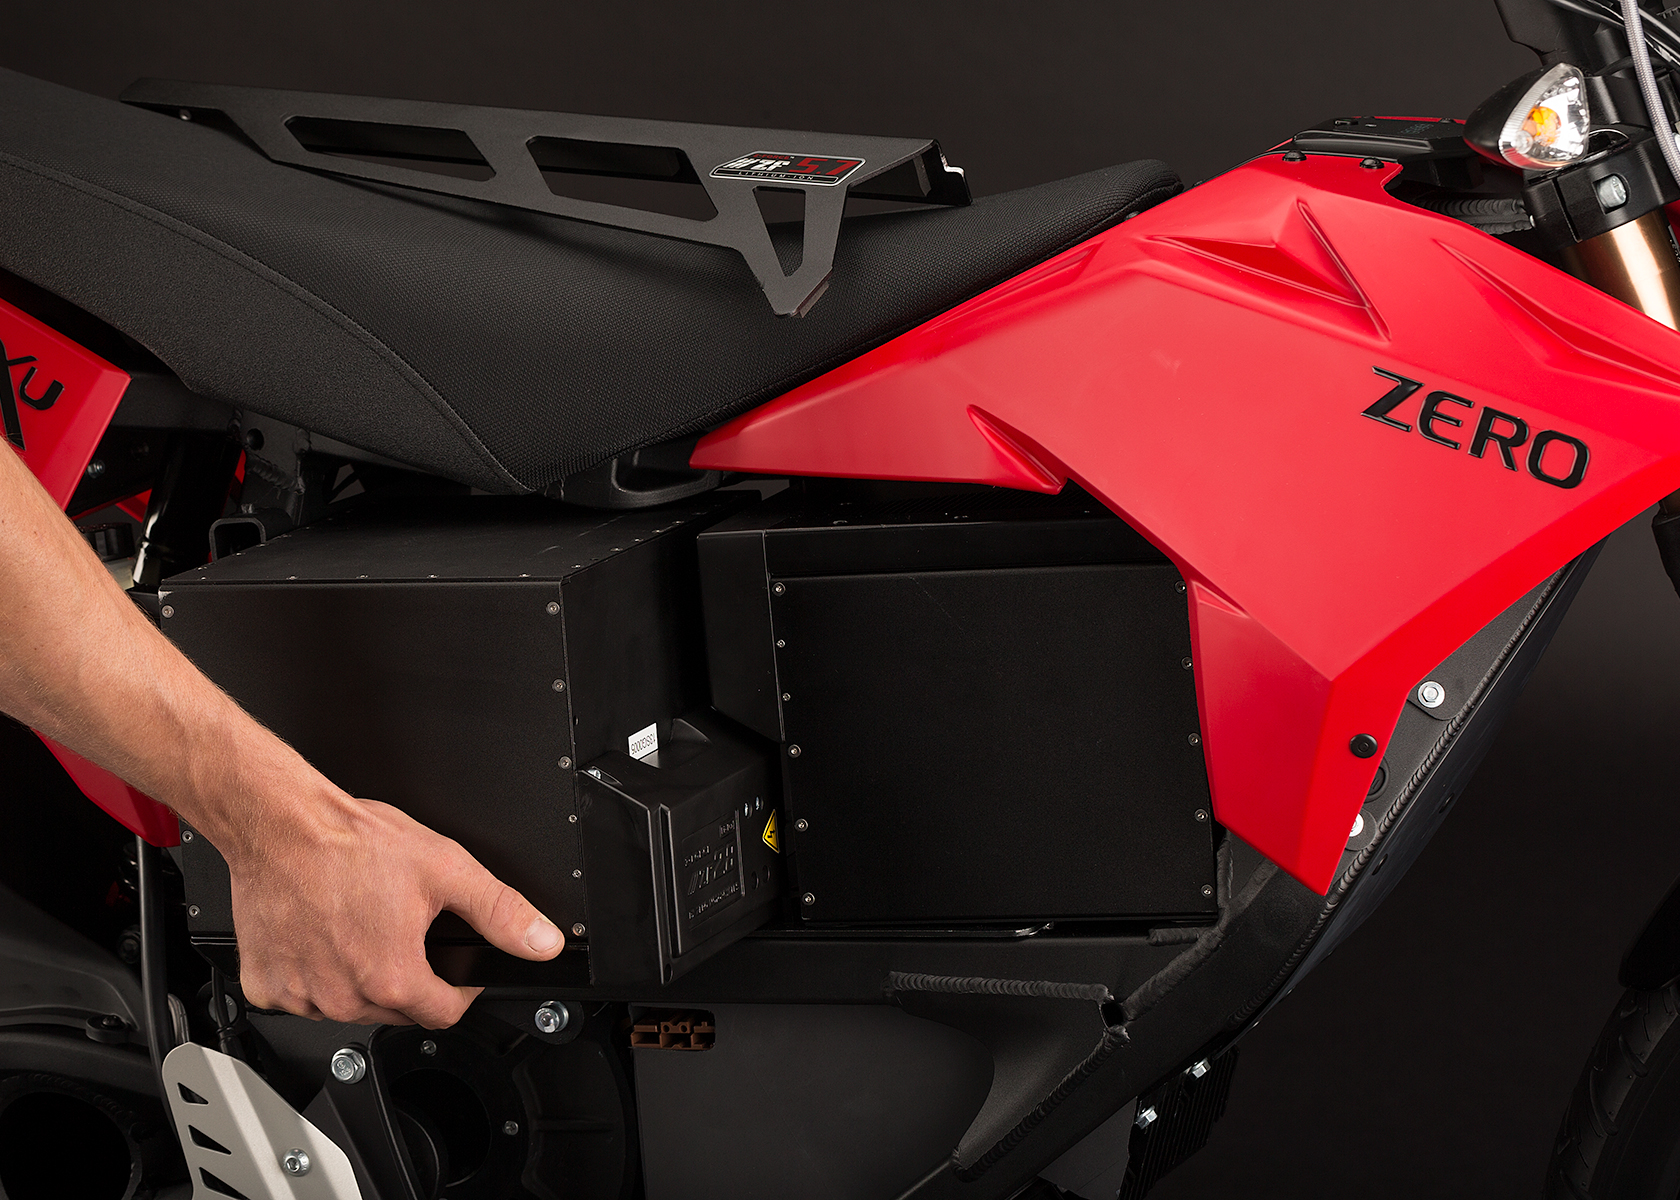 2013 Zero XU Electric Motorcycle: Modular Battery